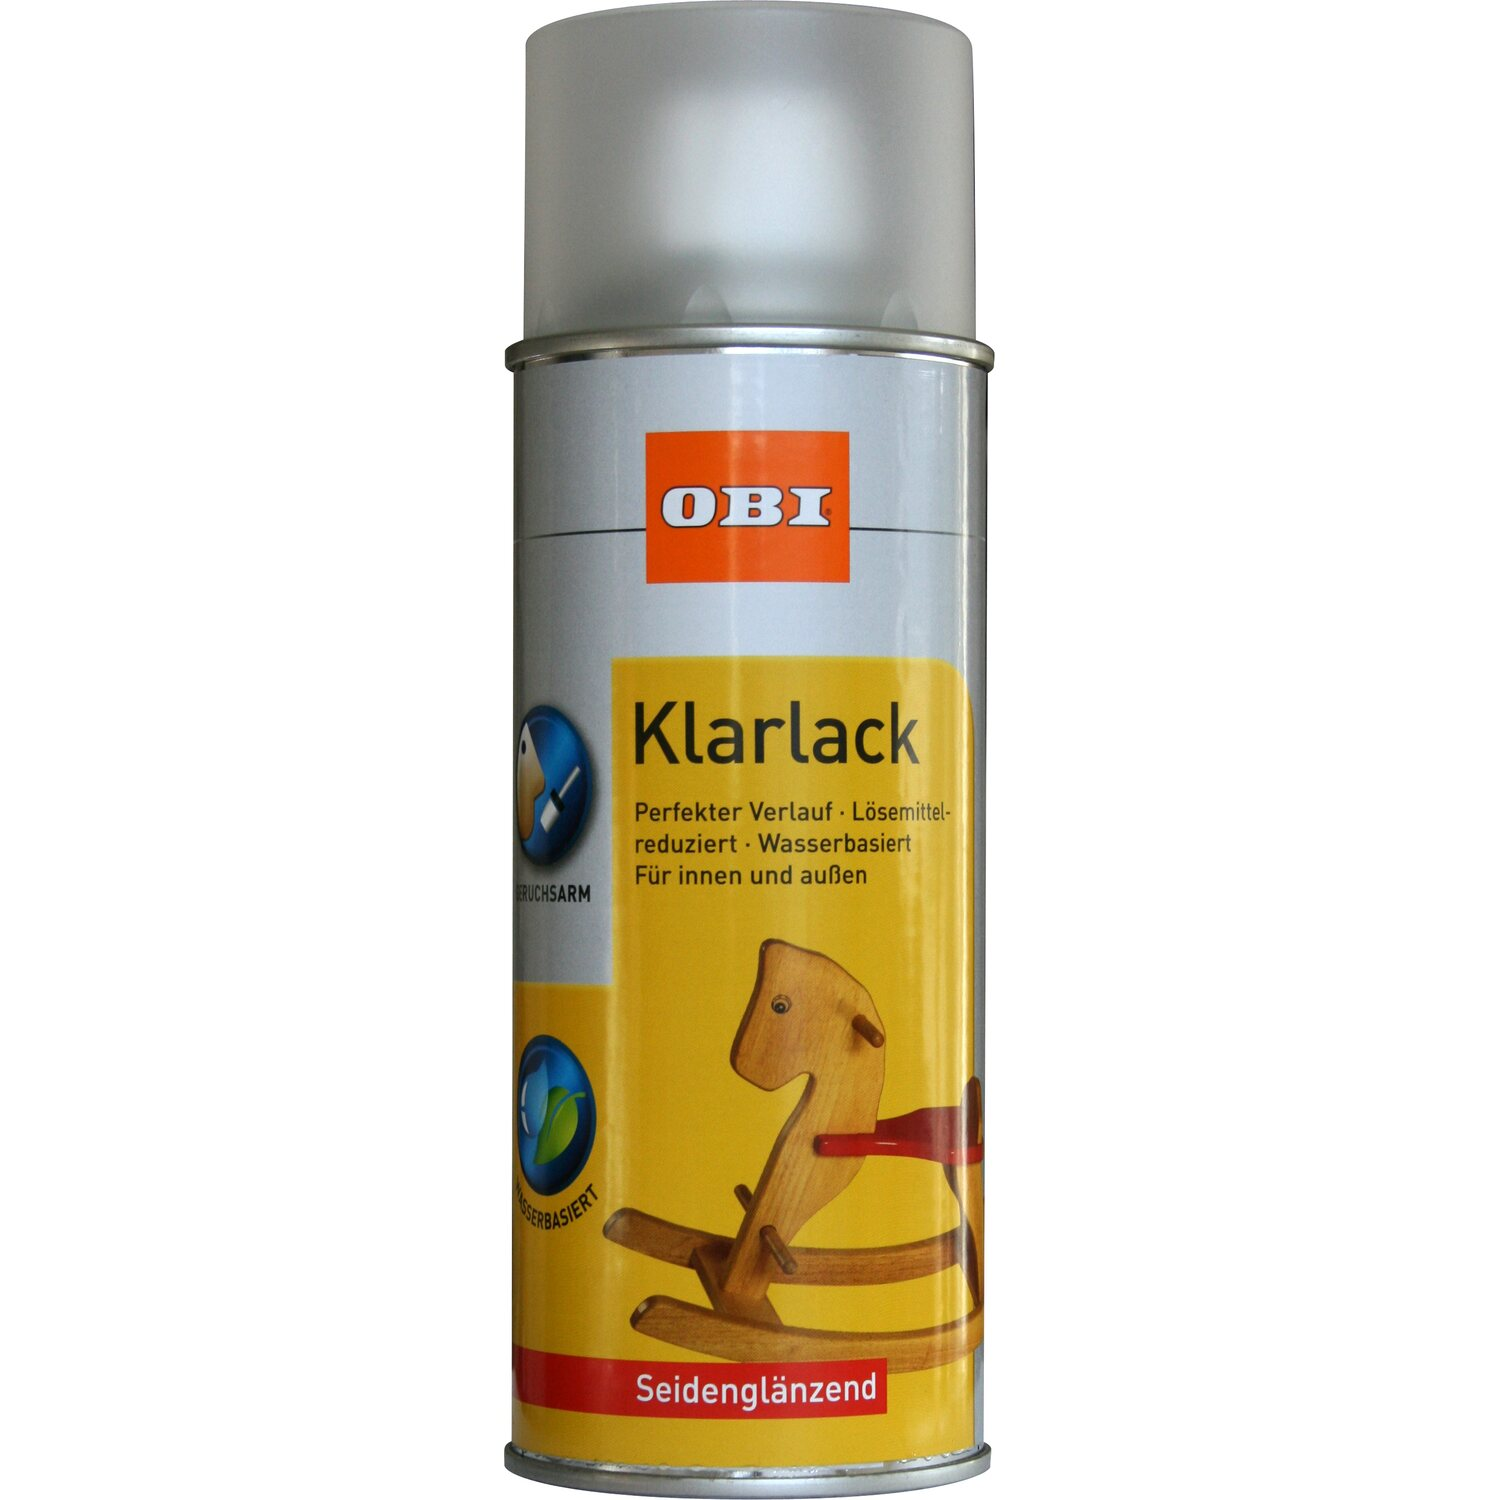 OBI Klarlack Spray Transparent seidenglänzend wv 400 ml von OBI